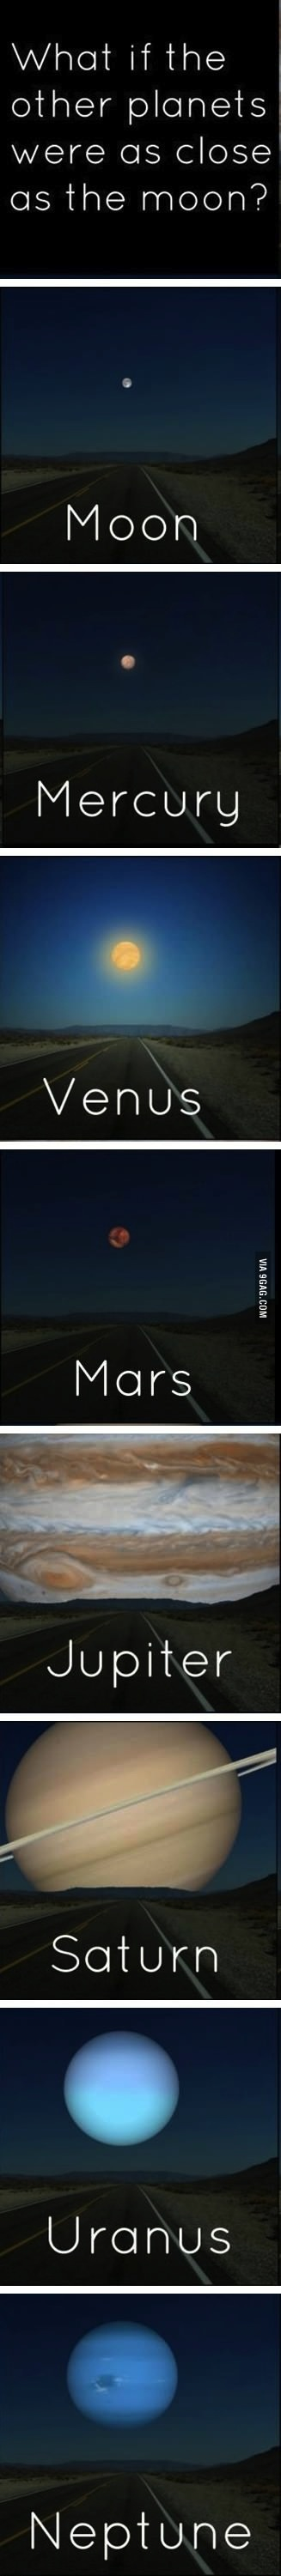 planets, moon, solar system, perspective